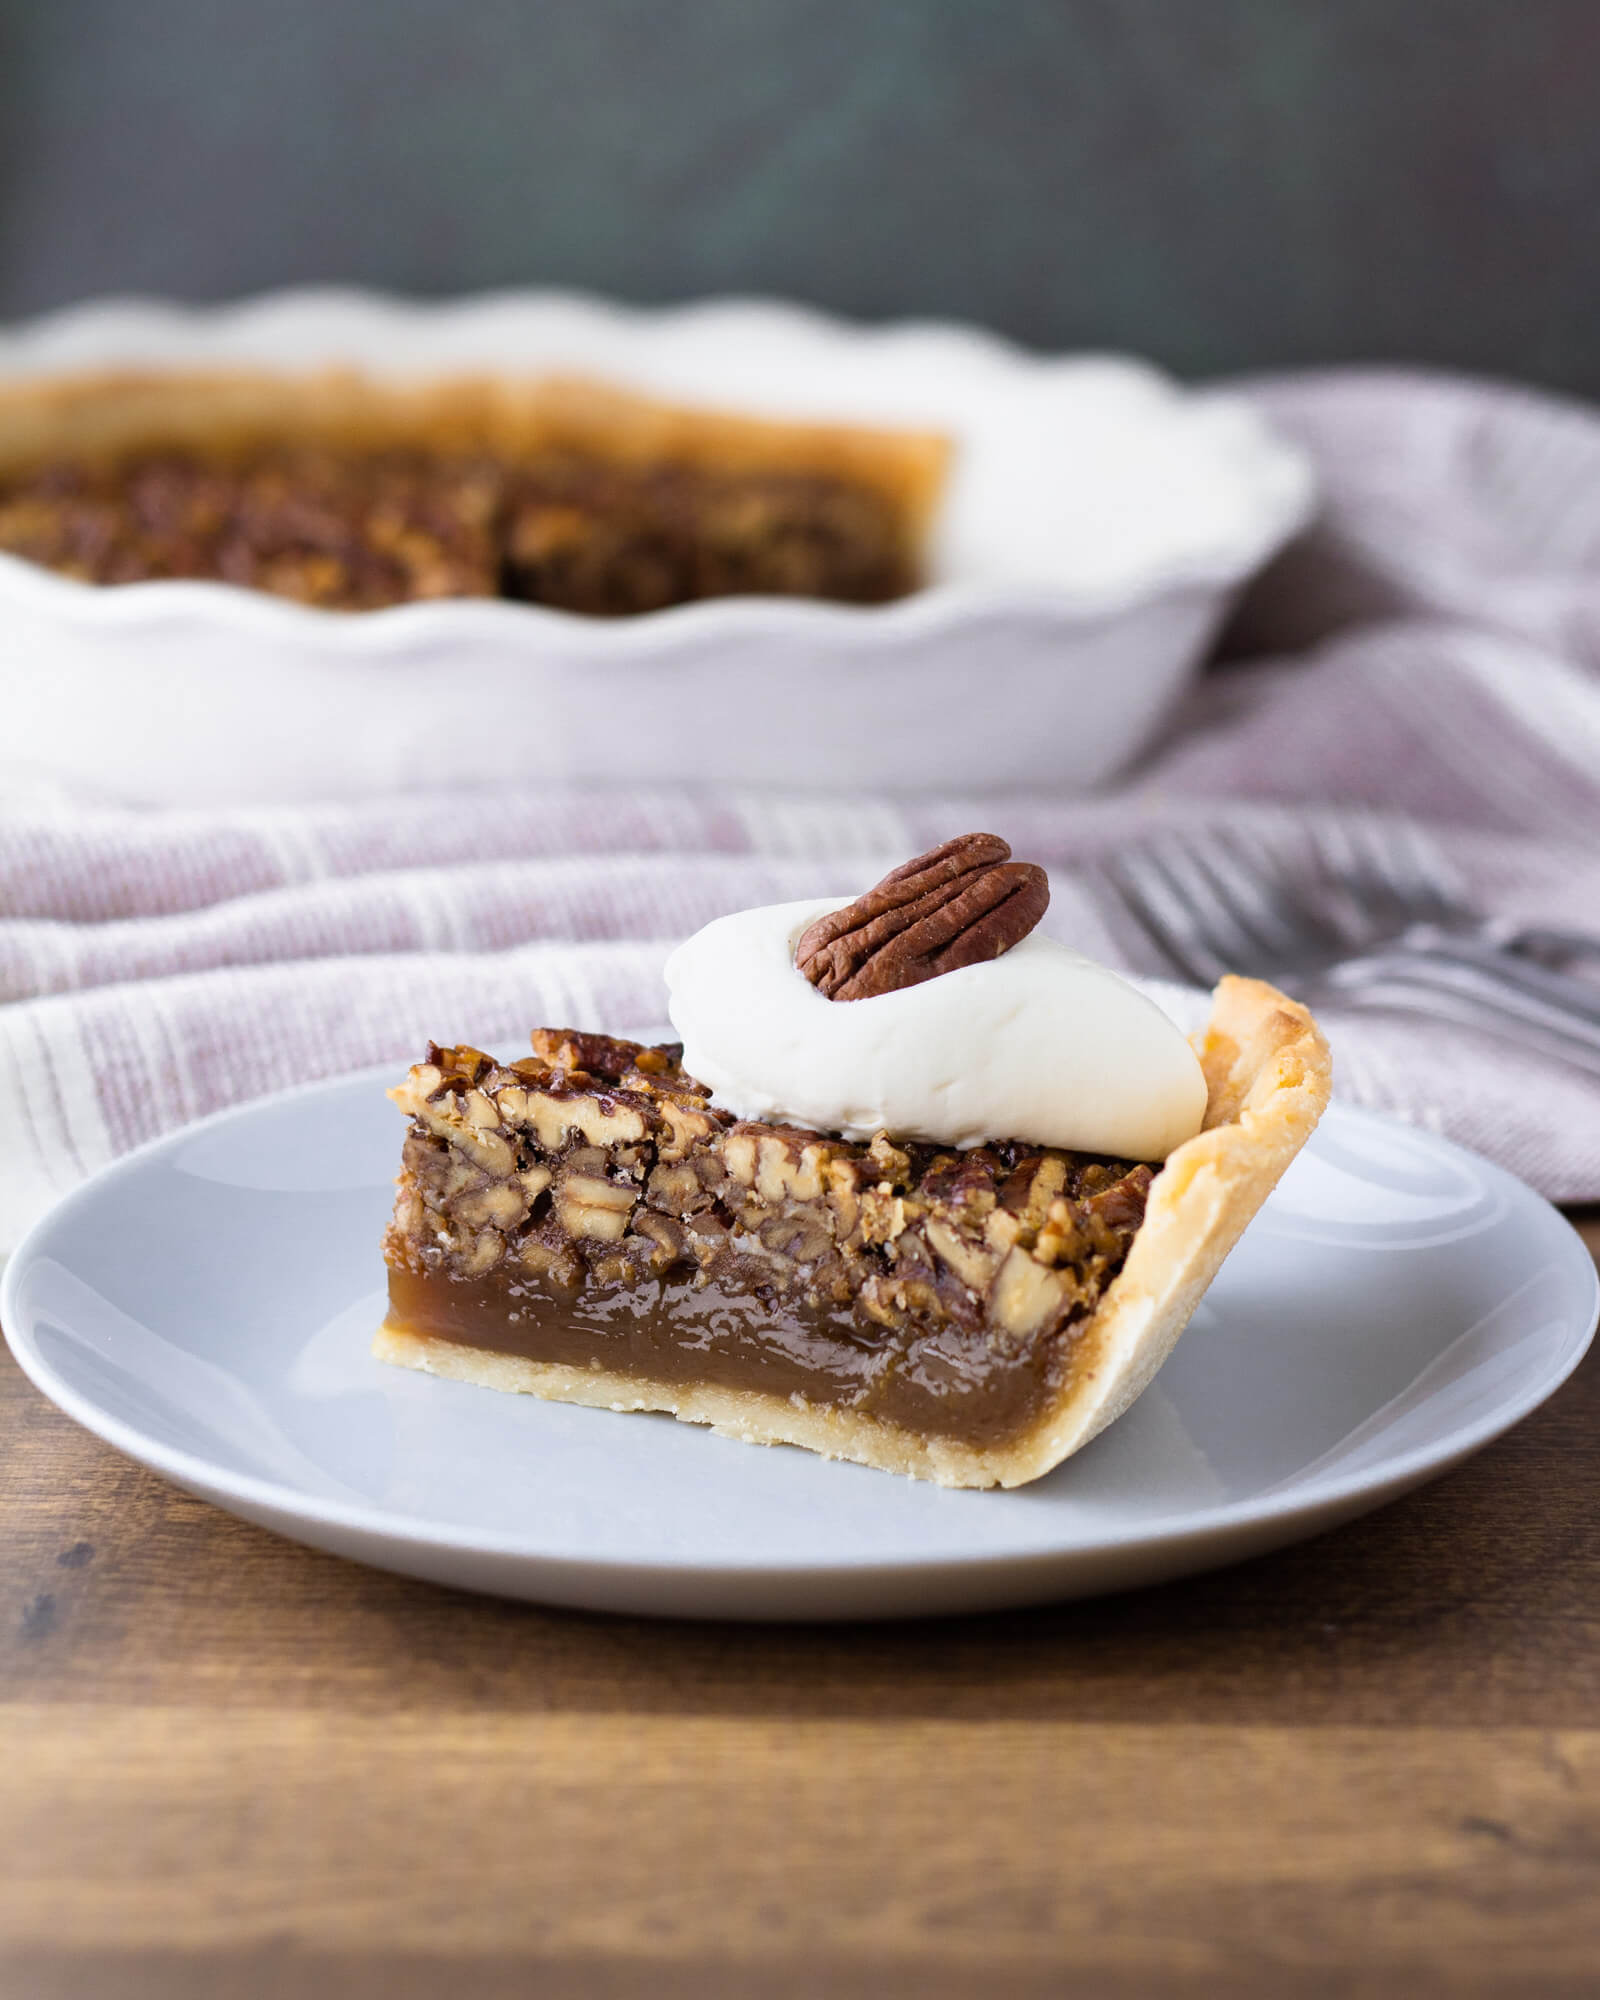 Failproof Keto Pecan Pie From A Pro Pastry Chef